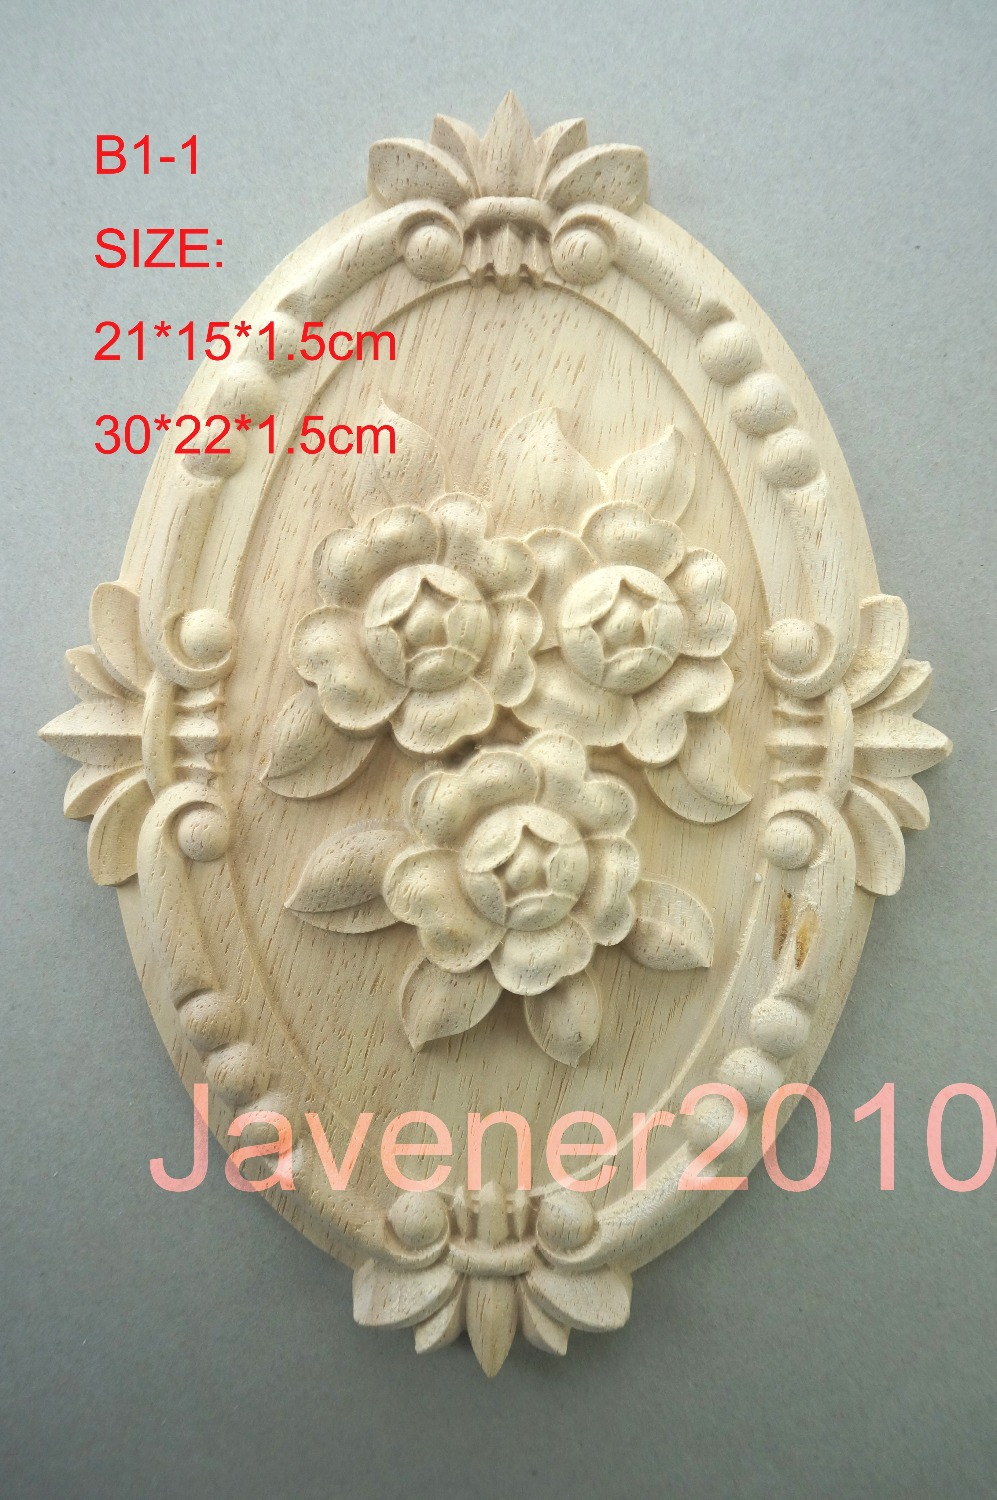 B1-1 -21*15*1.5cm Rubber Wood Carved Carving Round Onlay Applique Architectural Cabinet Furniture Door Unpainted Wall(China (Mainland))